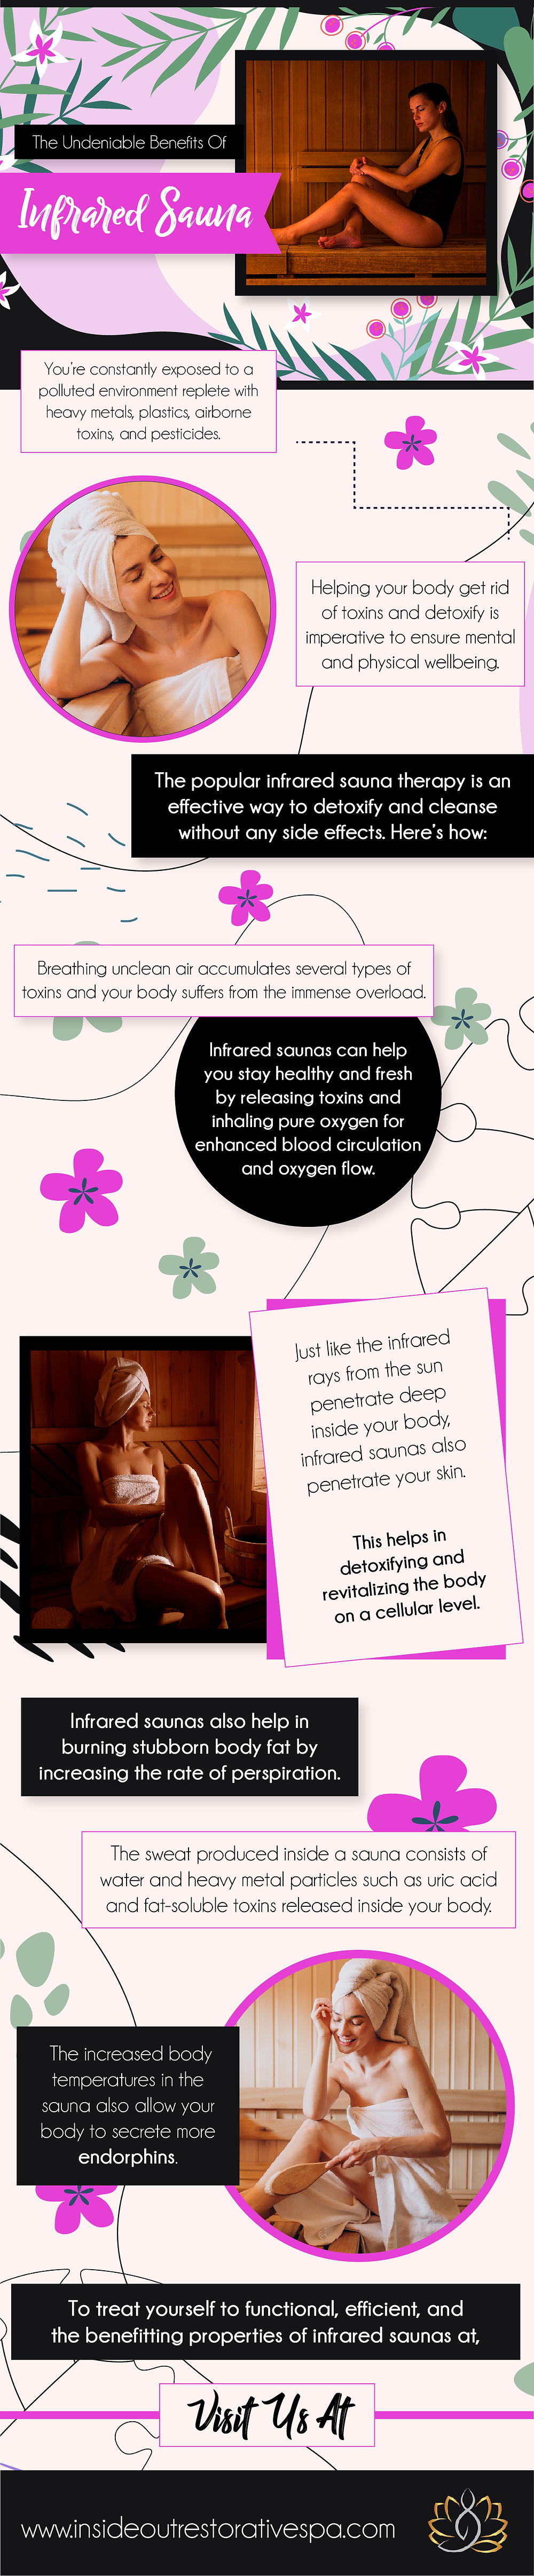 The Undeniable Benefits of Infrared Sauna - Infograph